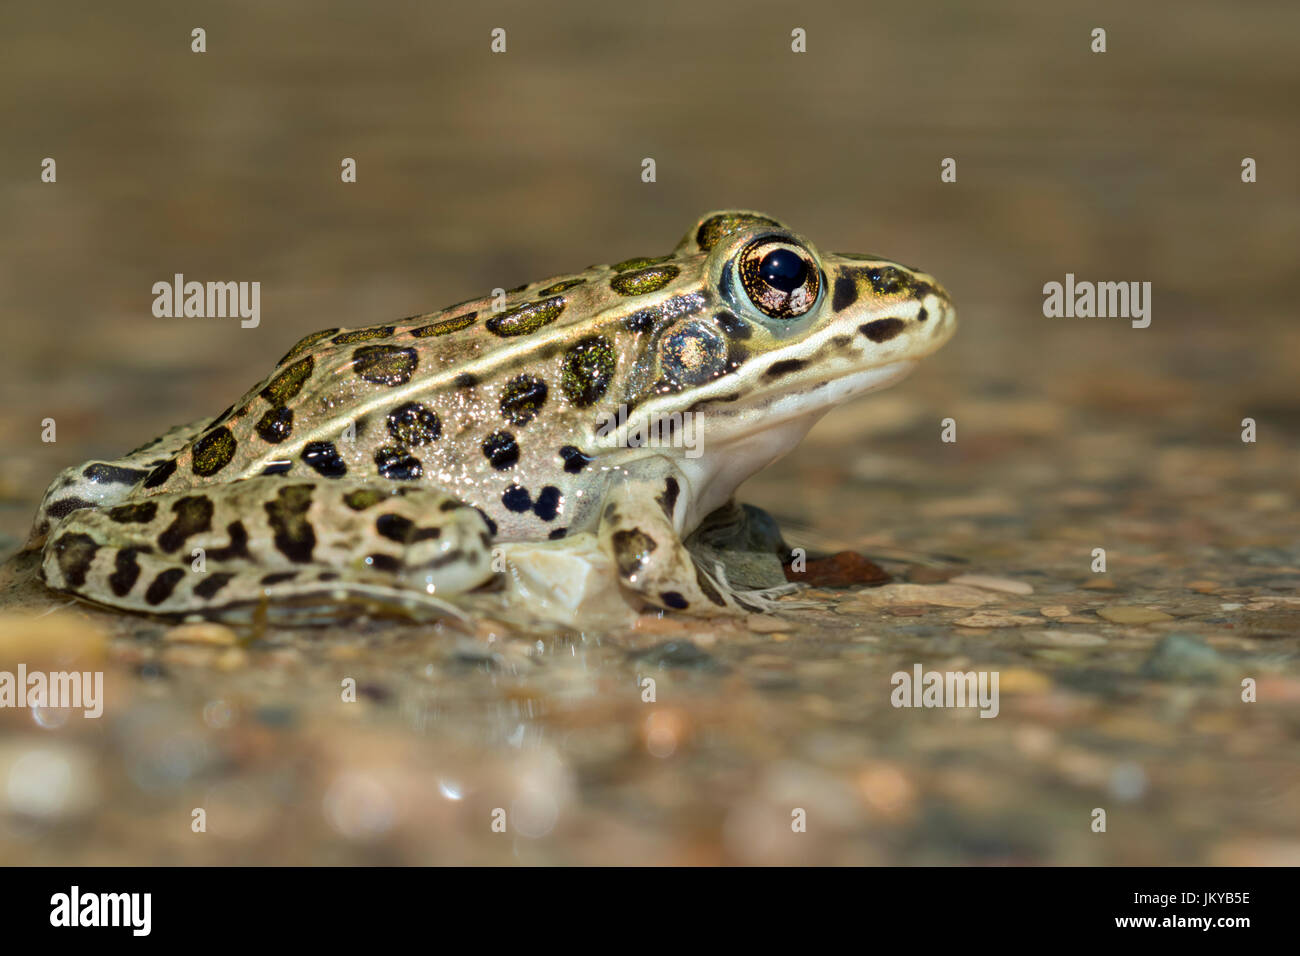 Northern leopard frog (Lithobates pipiens) in water stream, Ledges State Park, Iowa, USA. Stock Photo